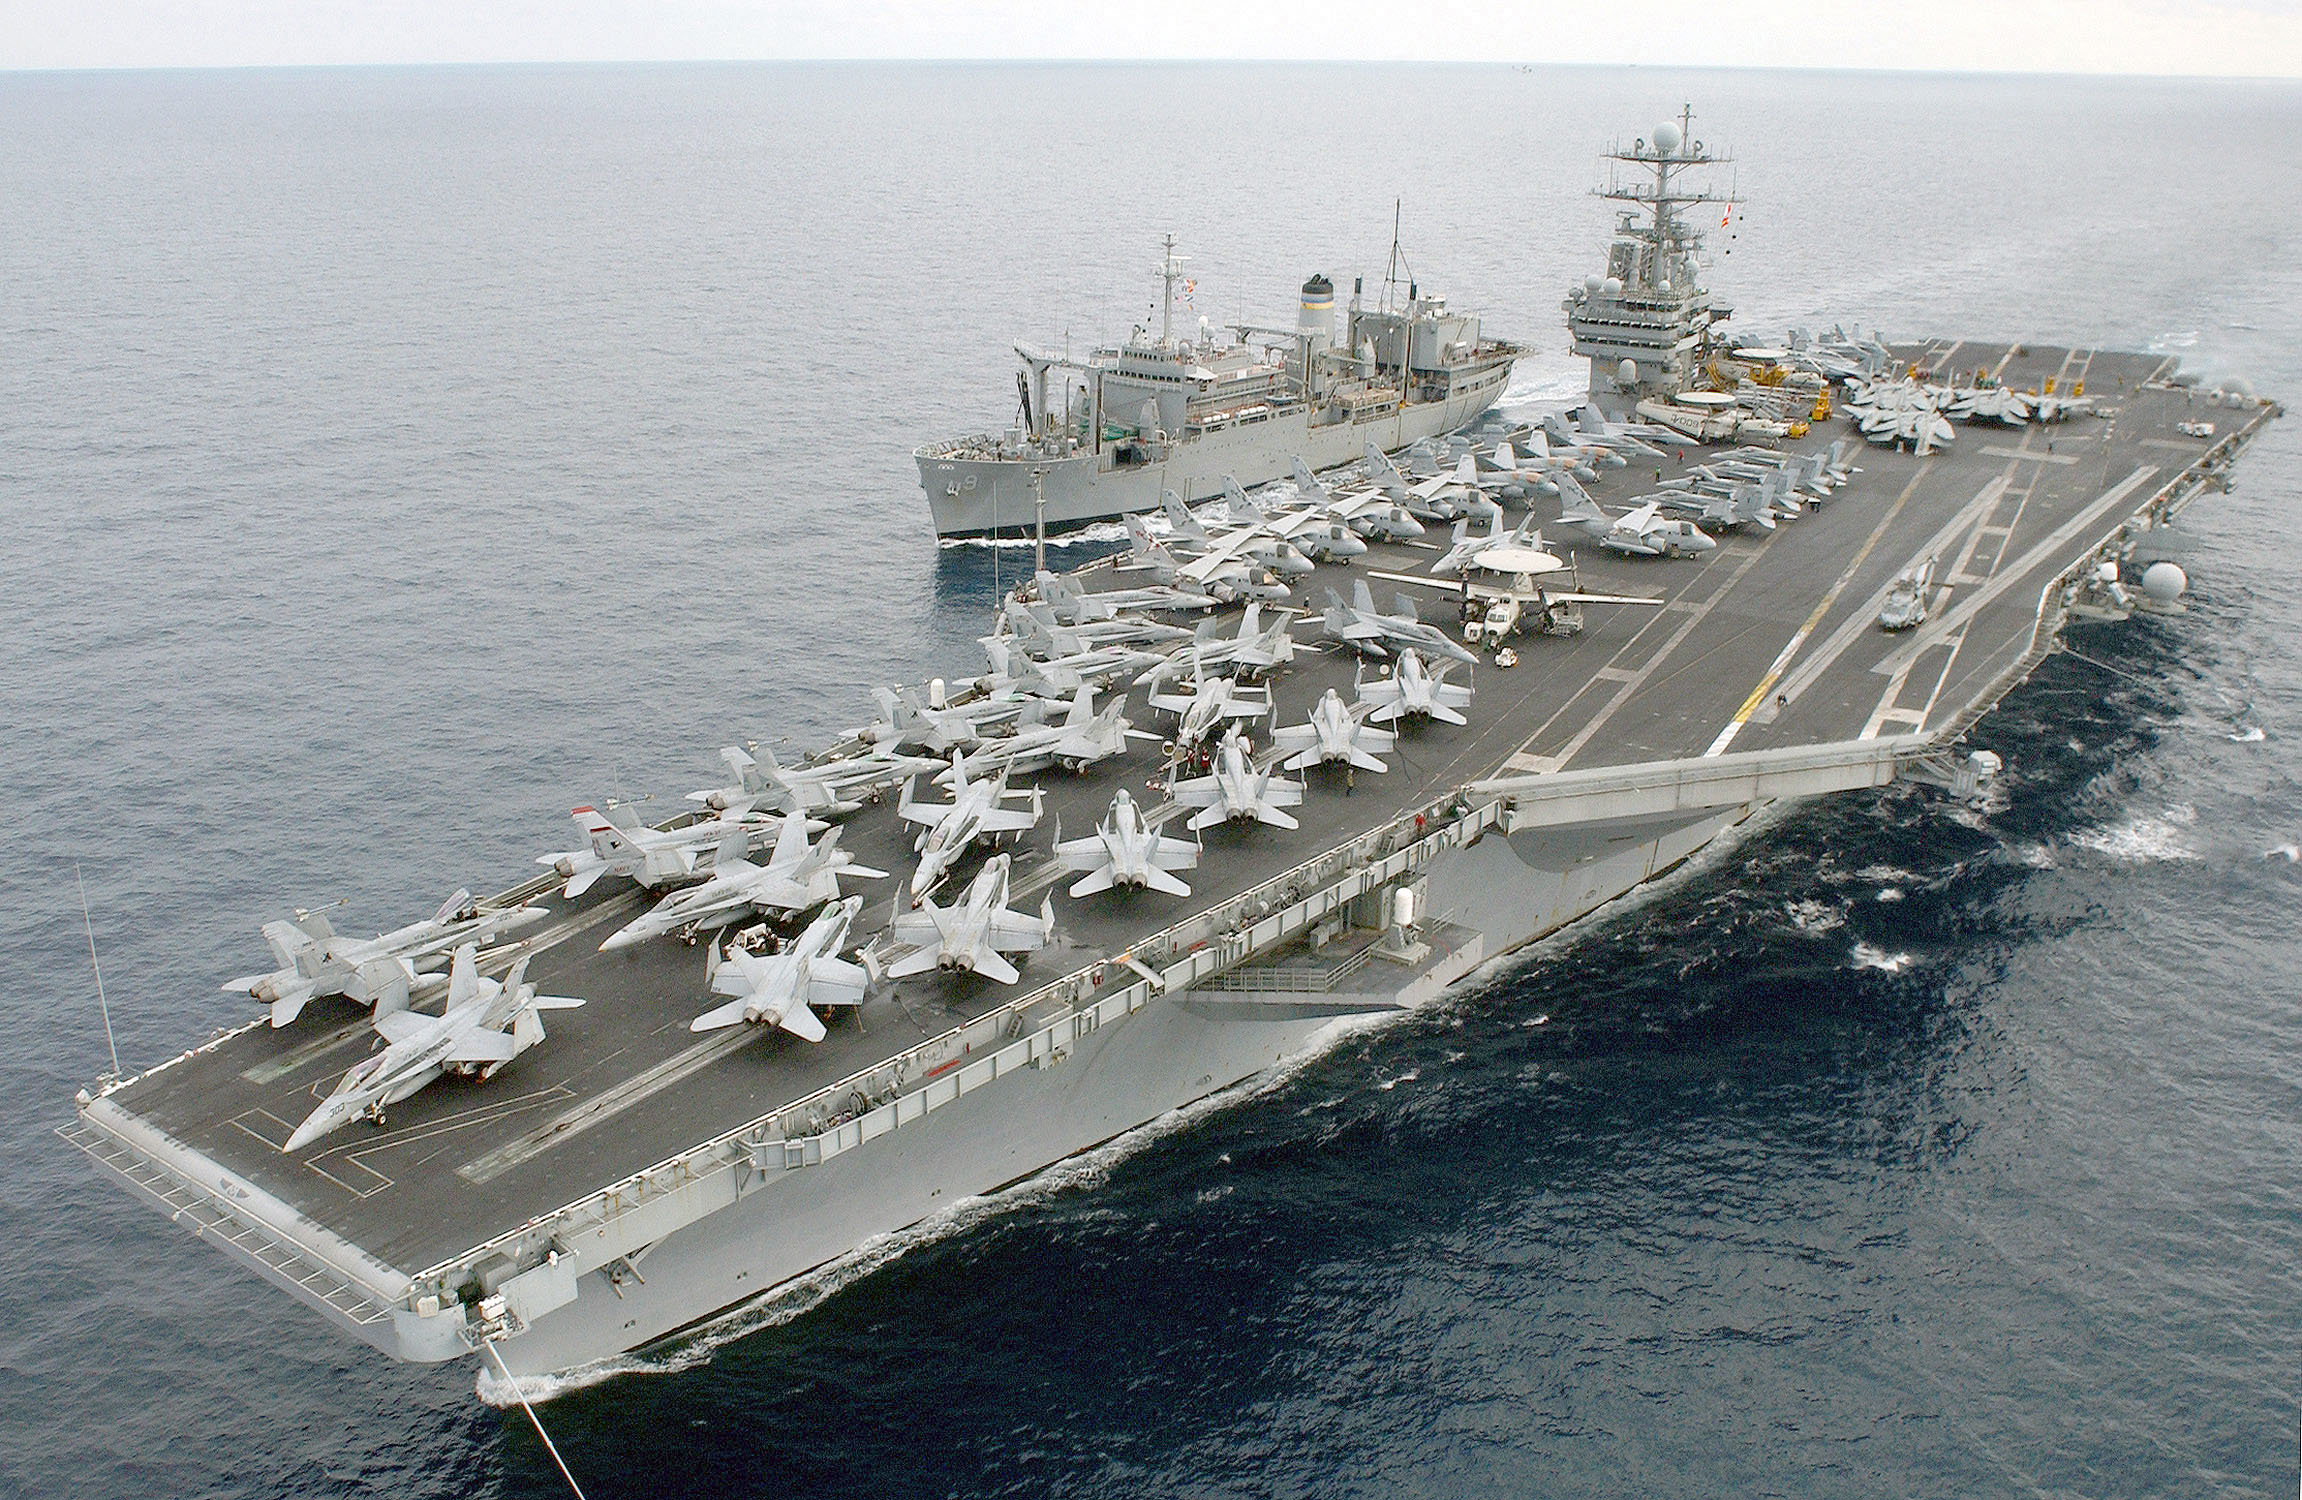 Uss george washington (1990)